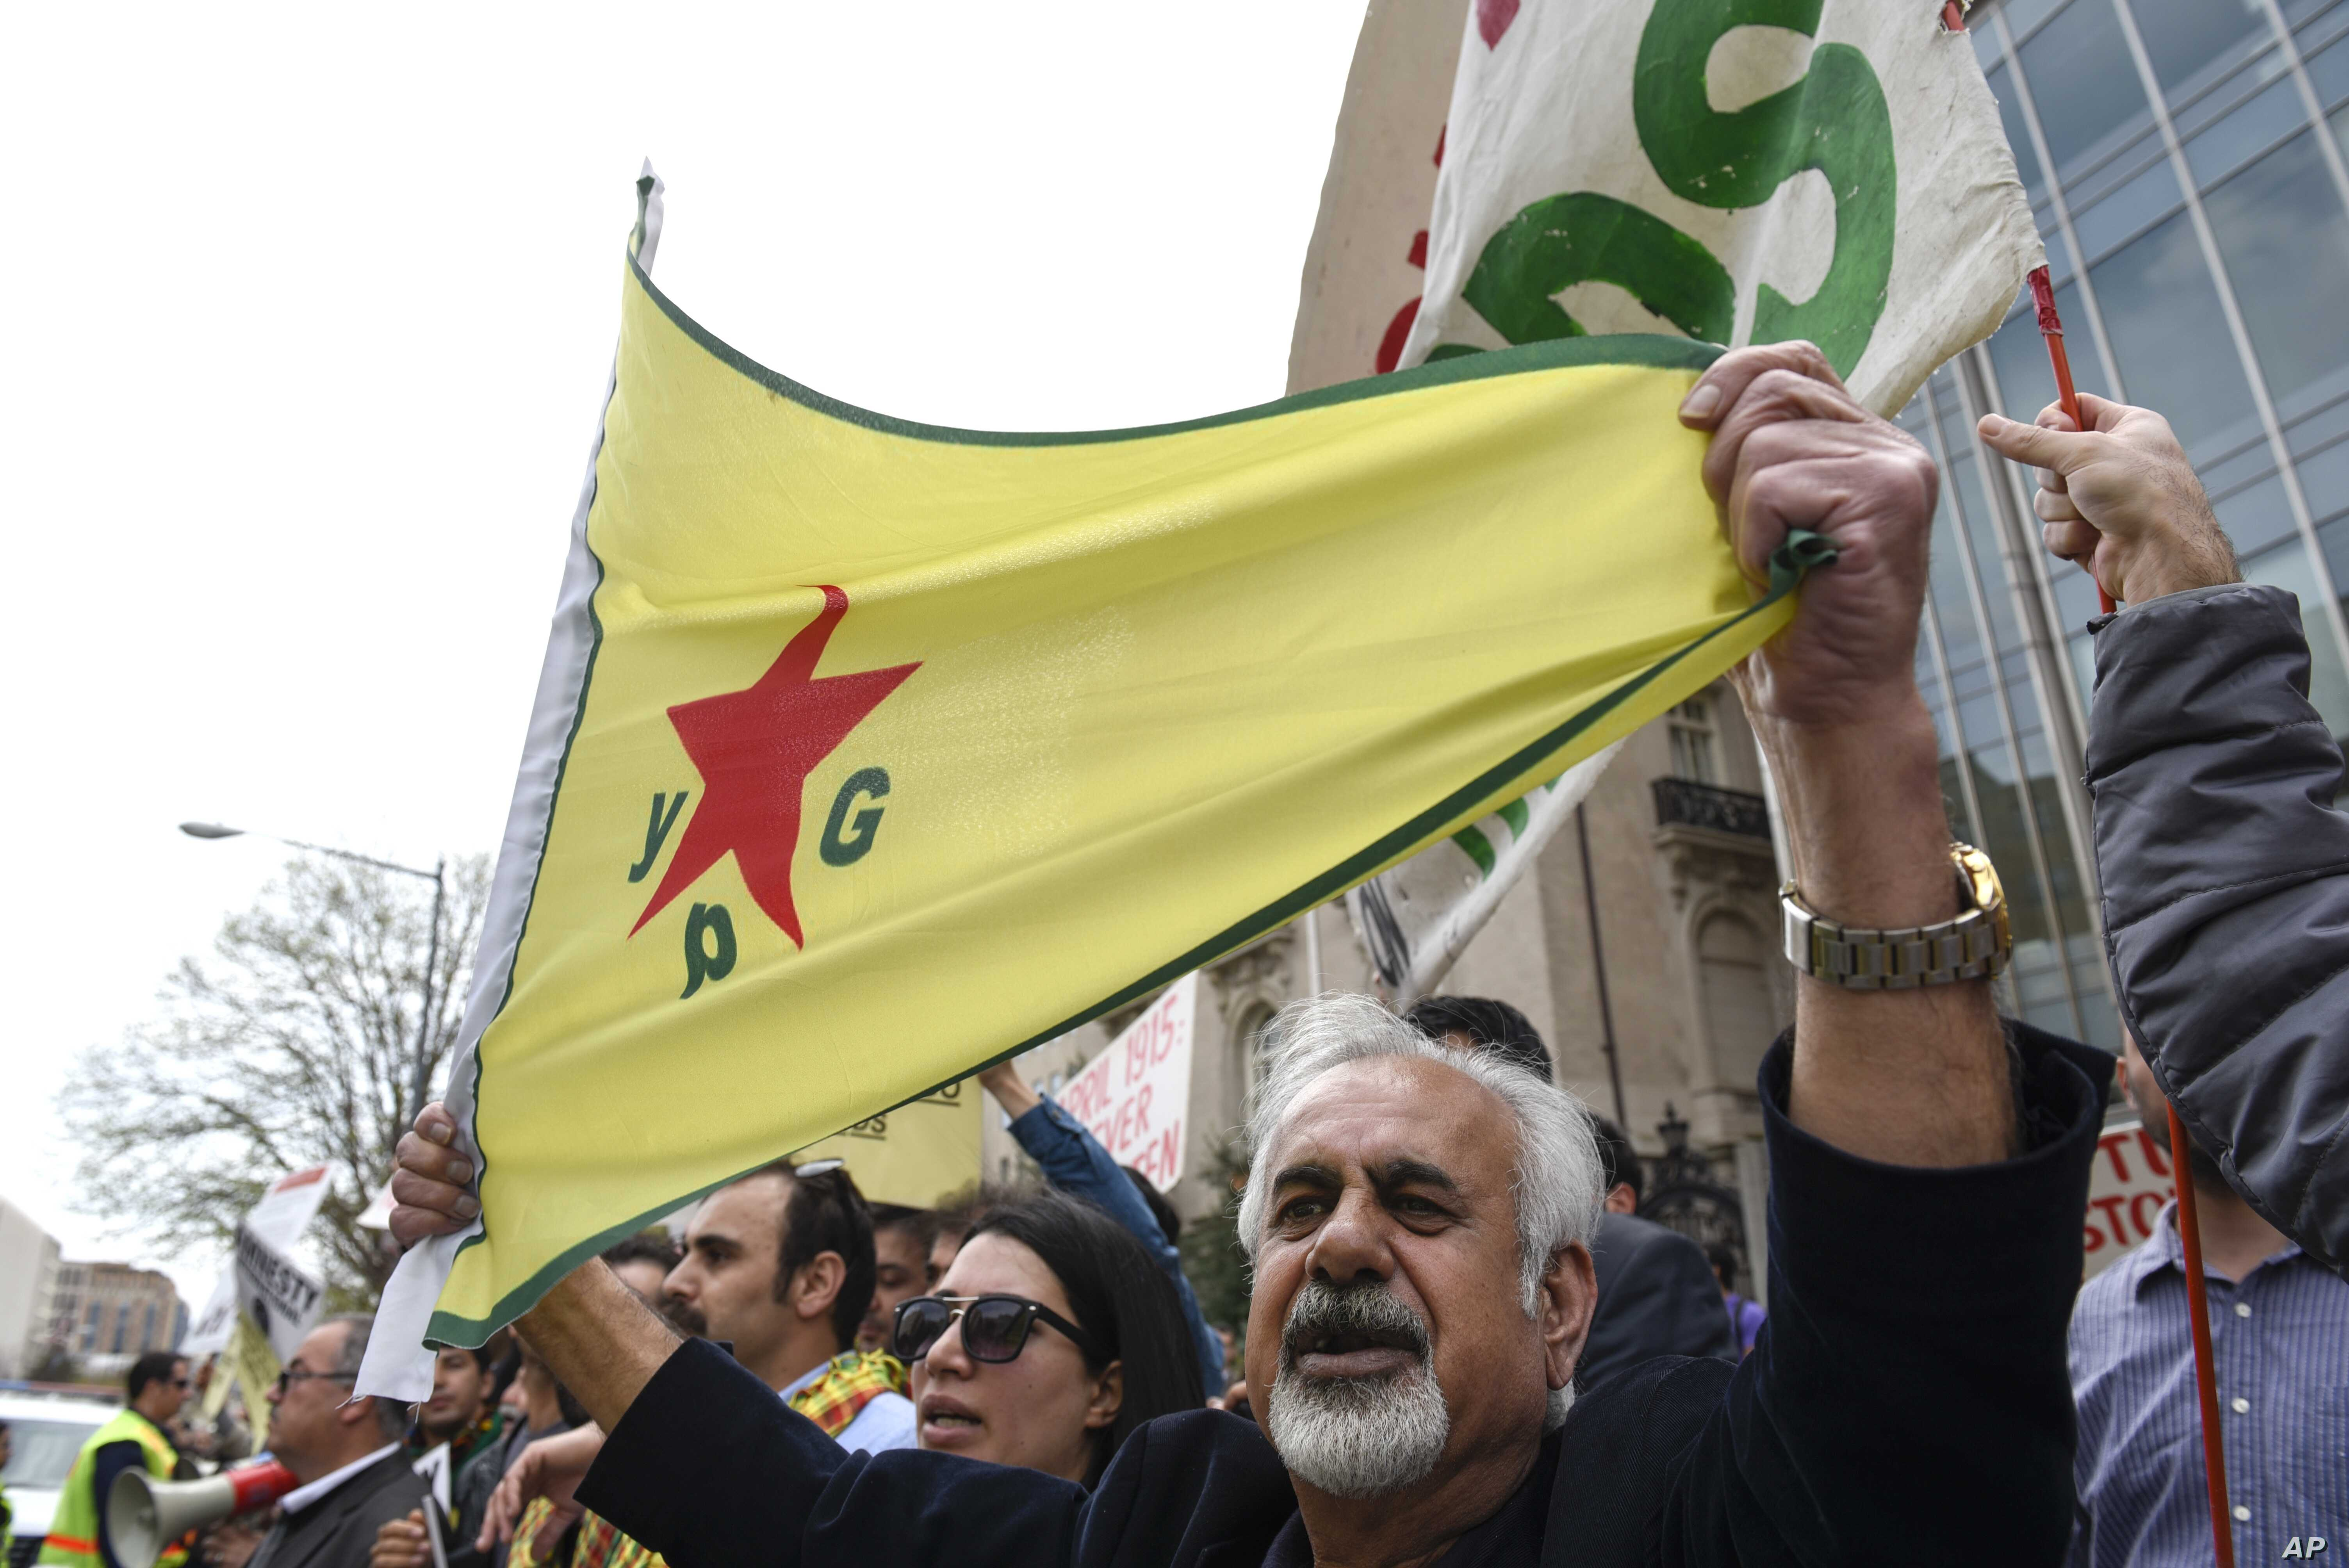 A man holds a flag of YPG, a Syria-based Kurdish militant group, during a protest against Turkish President Recep Tayyip Erdogan in front of Brookings Institution in Washington, Thursday, March 31, 2016, where President Erdogan was speaking. (AP…